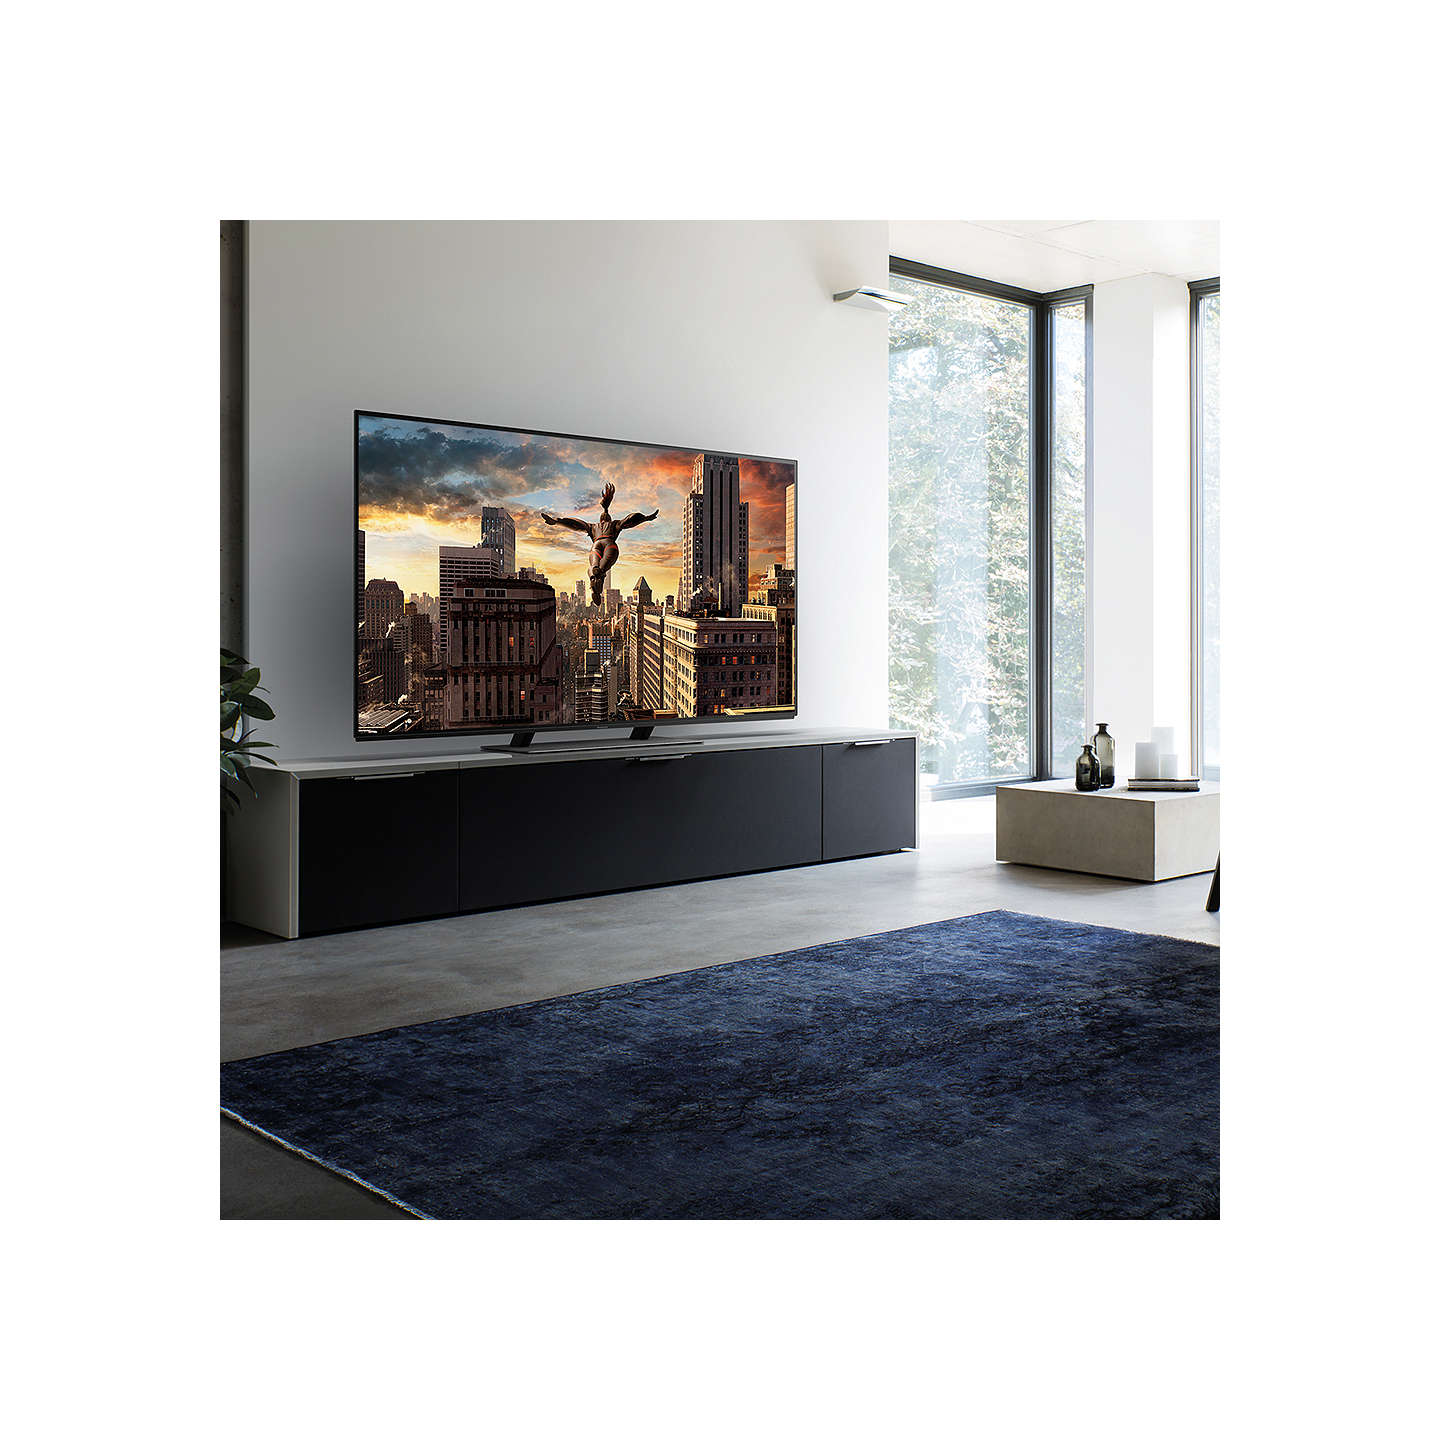 "BuyPanasonic TX-55EZ952B OLED HDR 4K Ultra HD Smart TV, 55"" with Freeview Play & Super Slim Design, Ultra HD Premium Certified, Black Online at johnlewis.com"